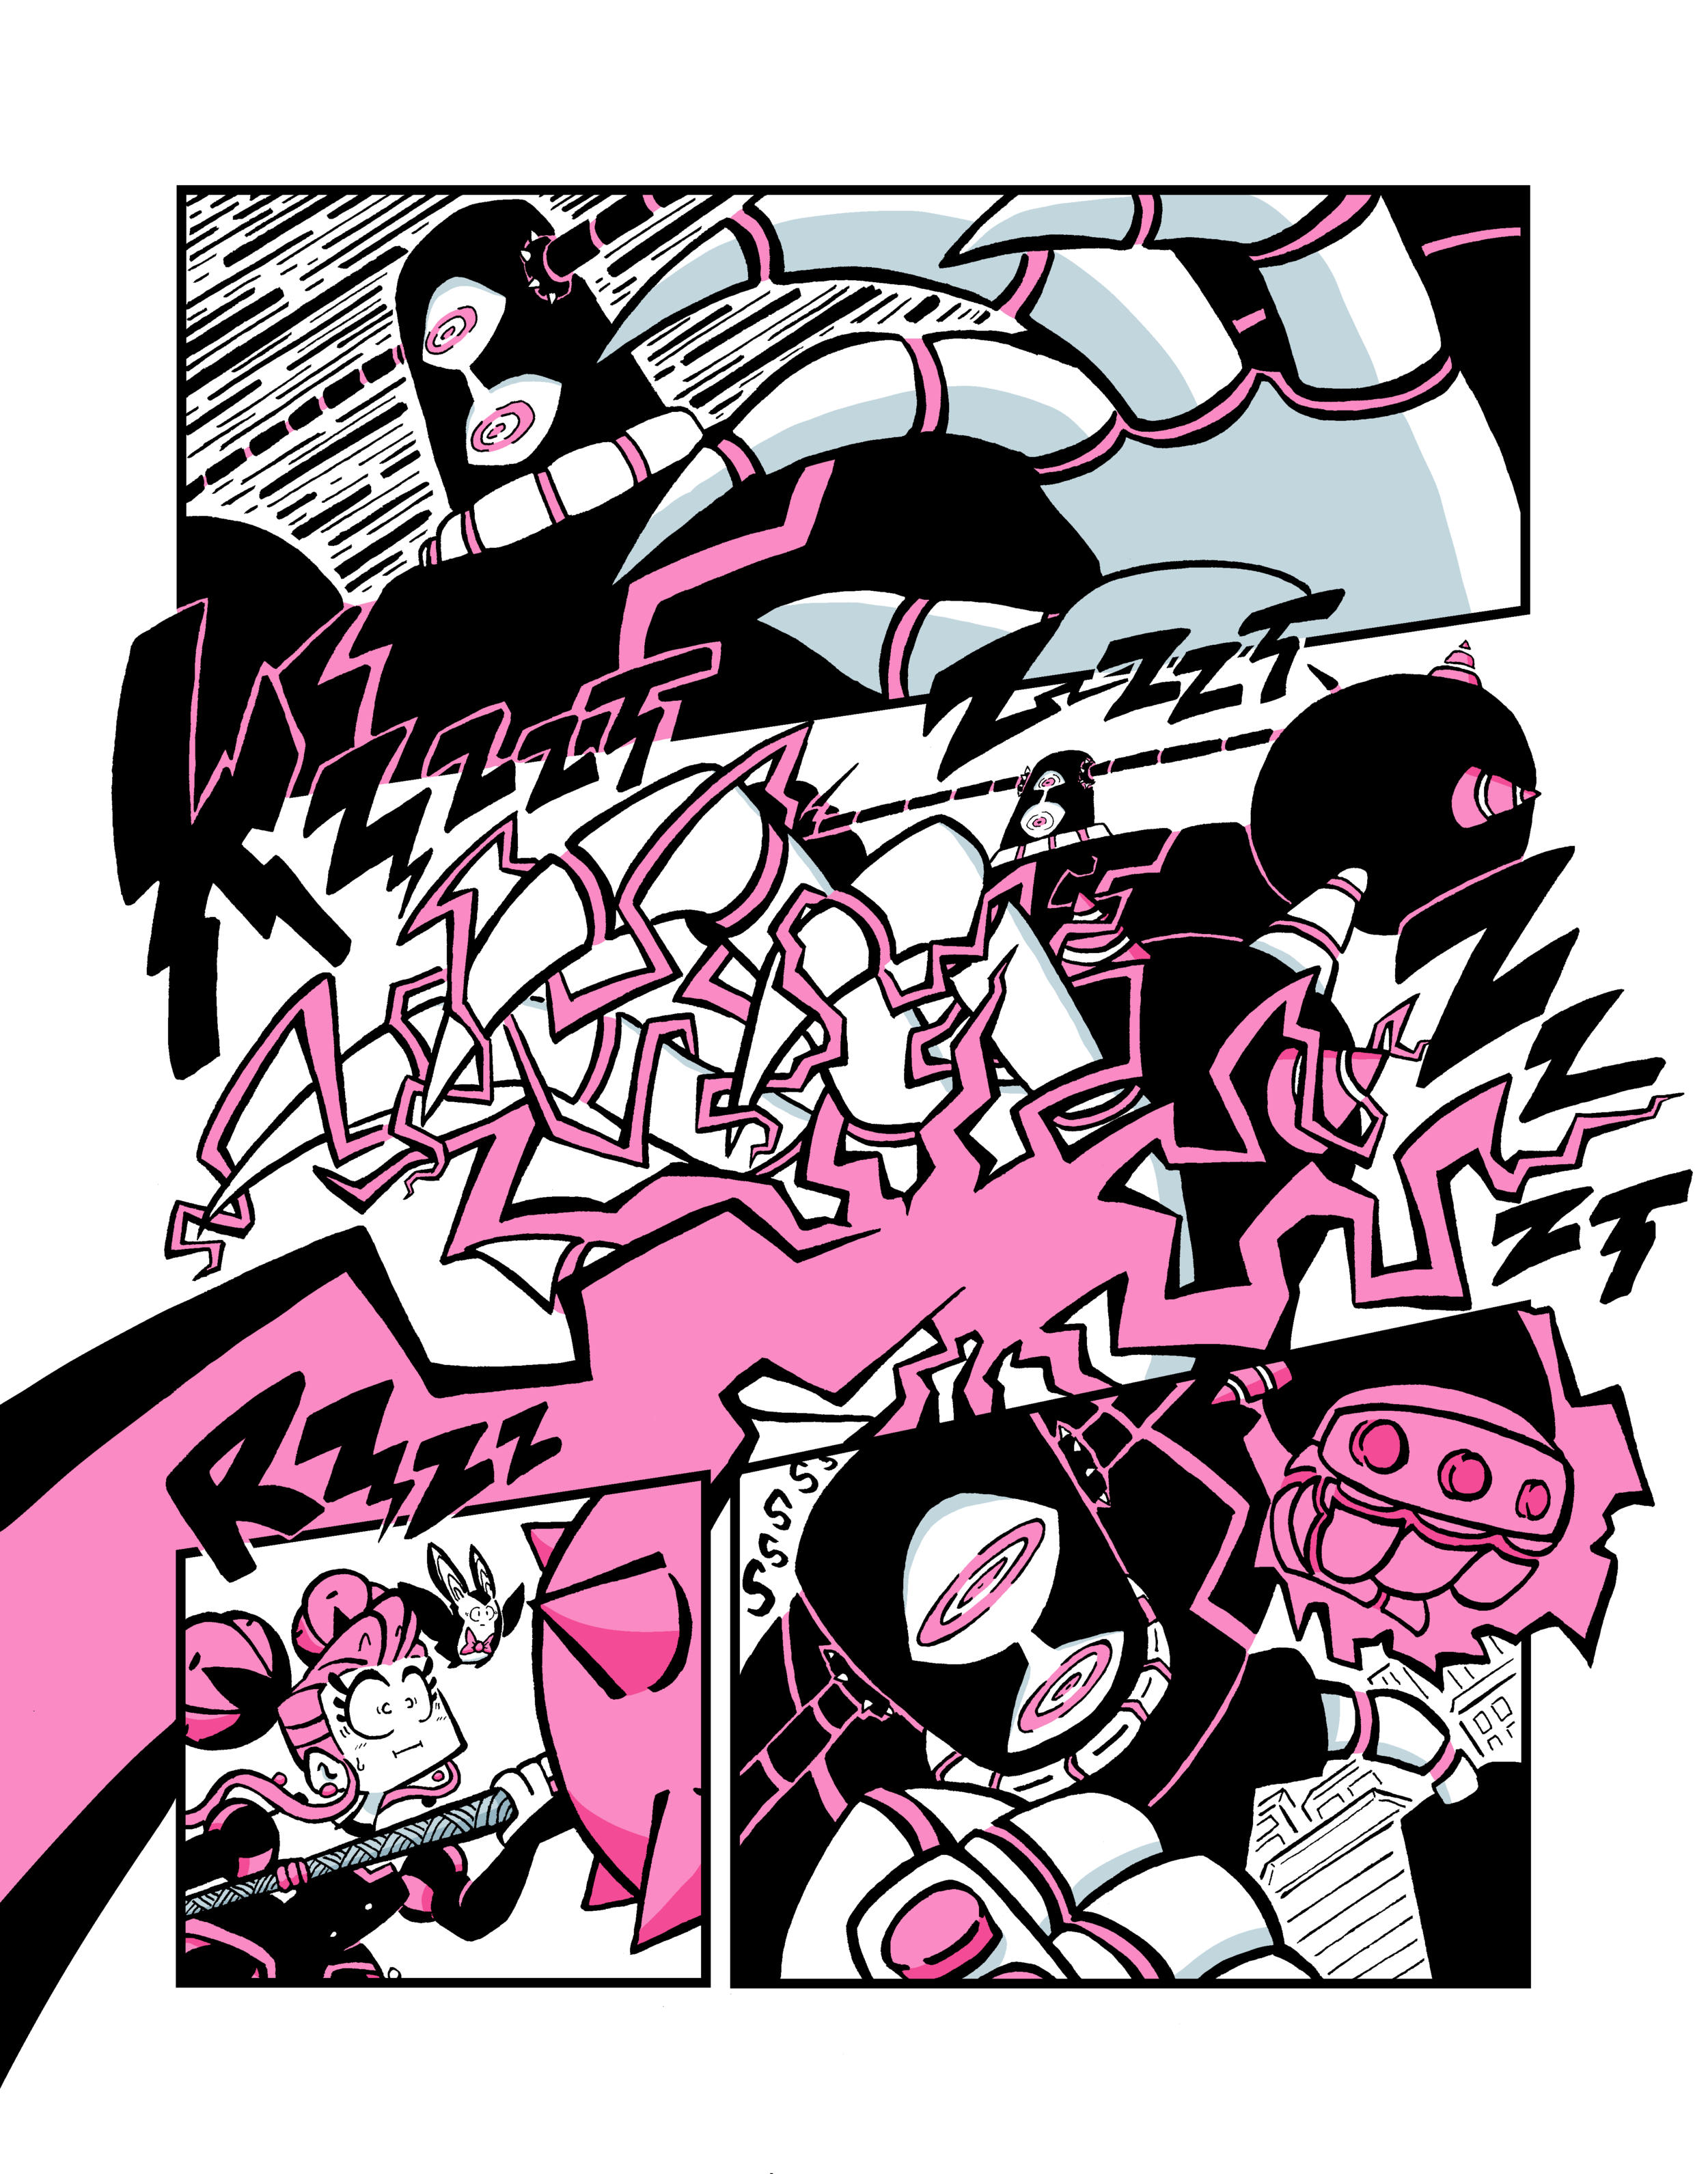 amgdoissue2page24.png